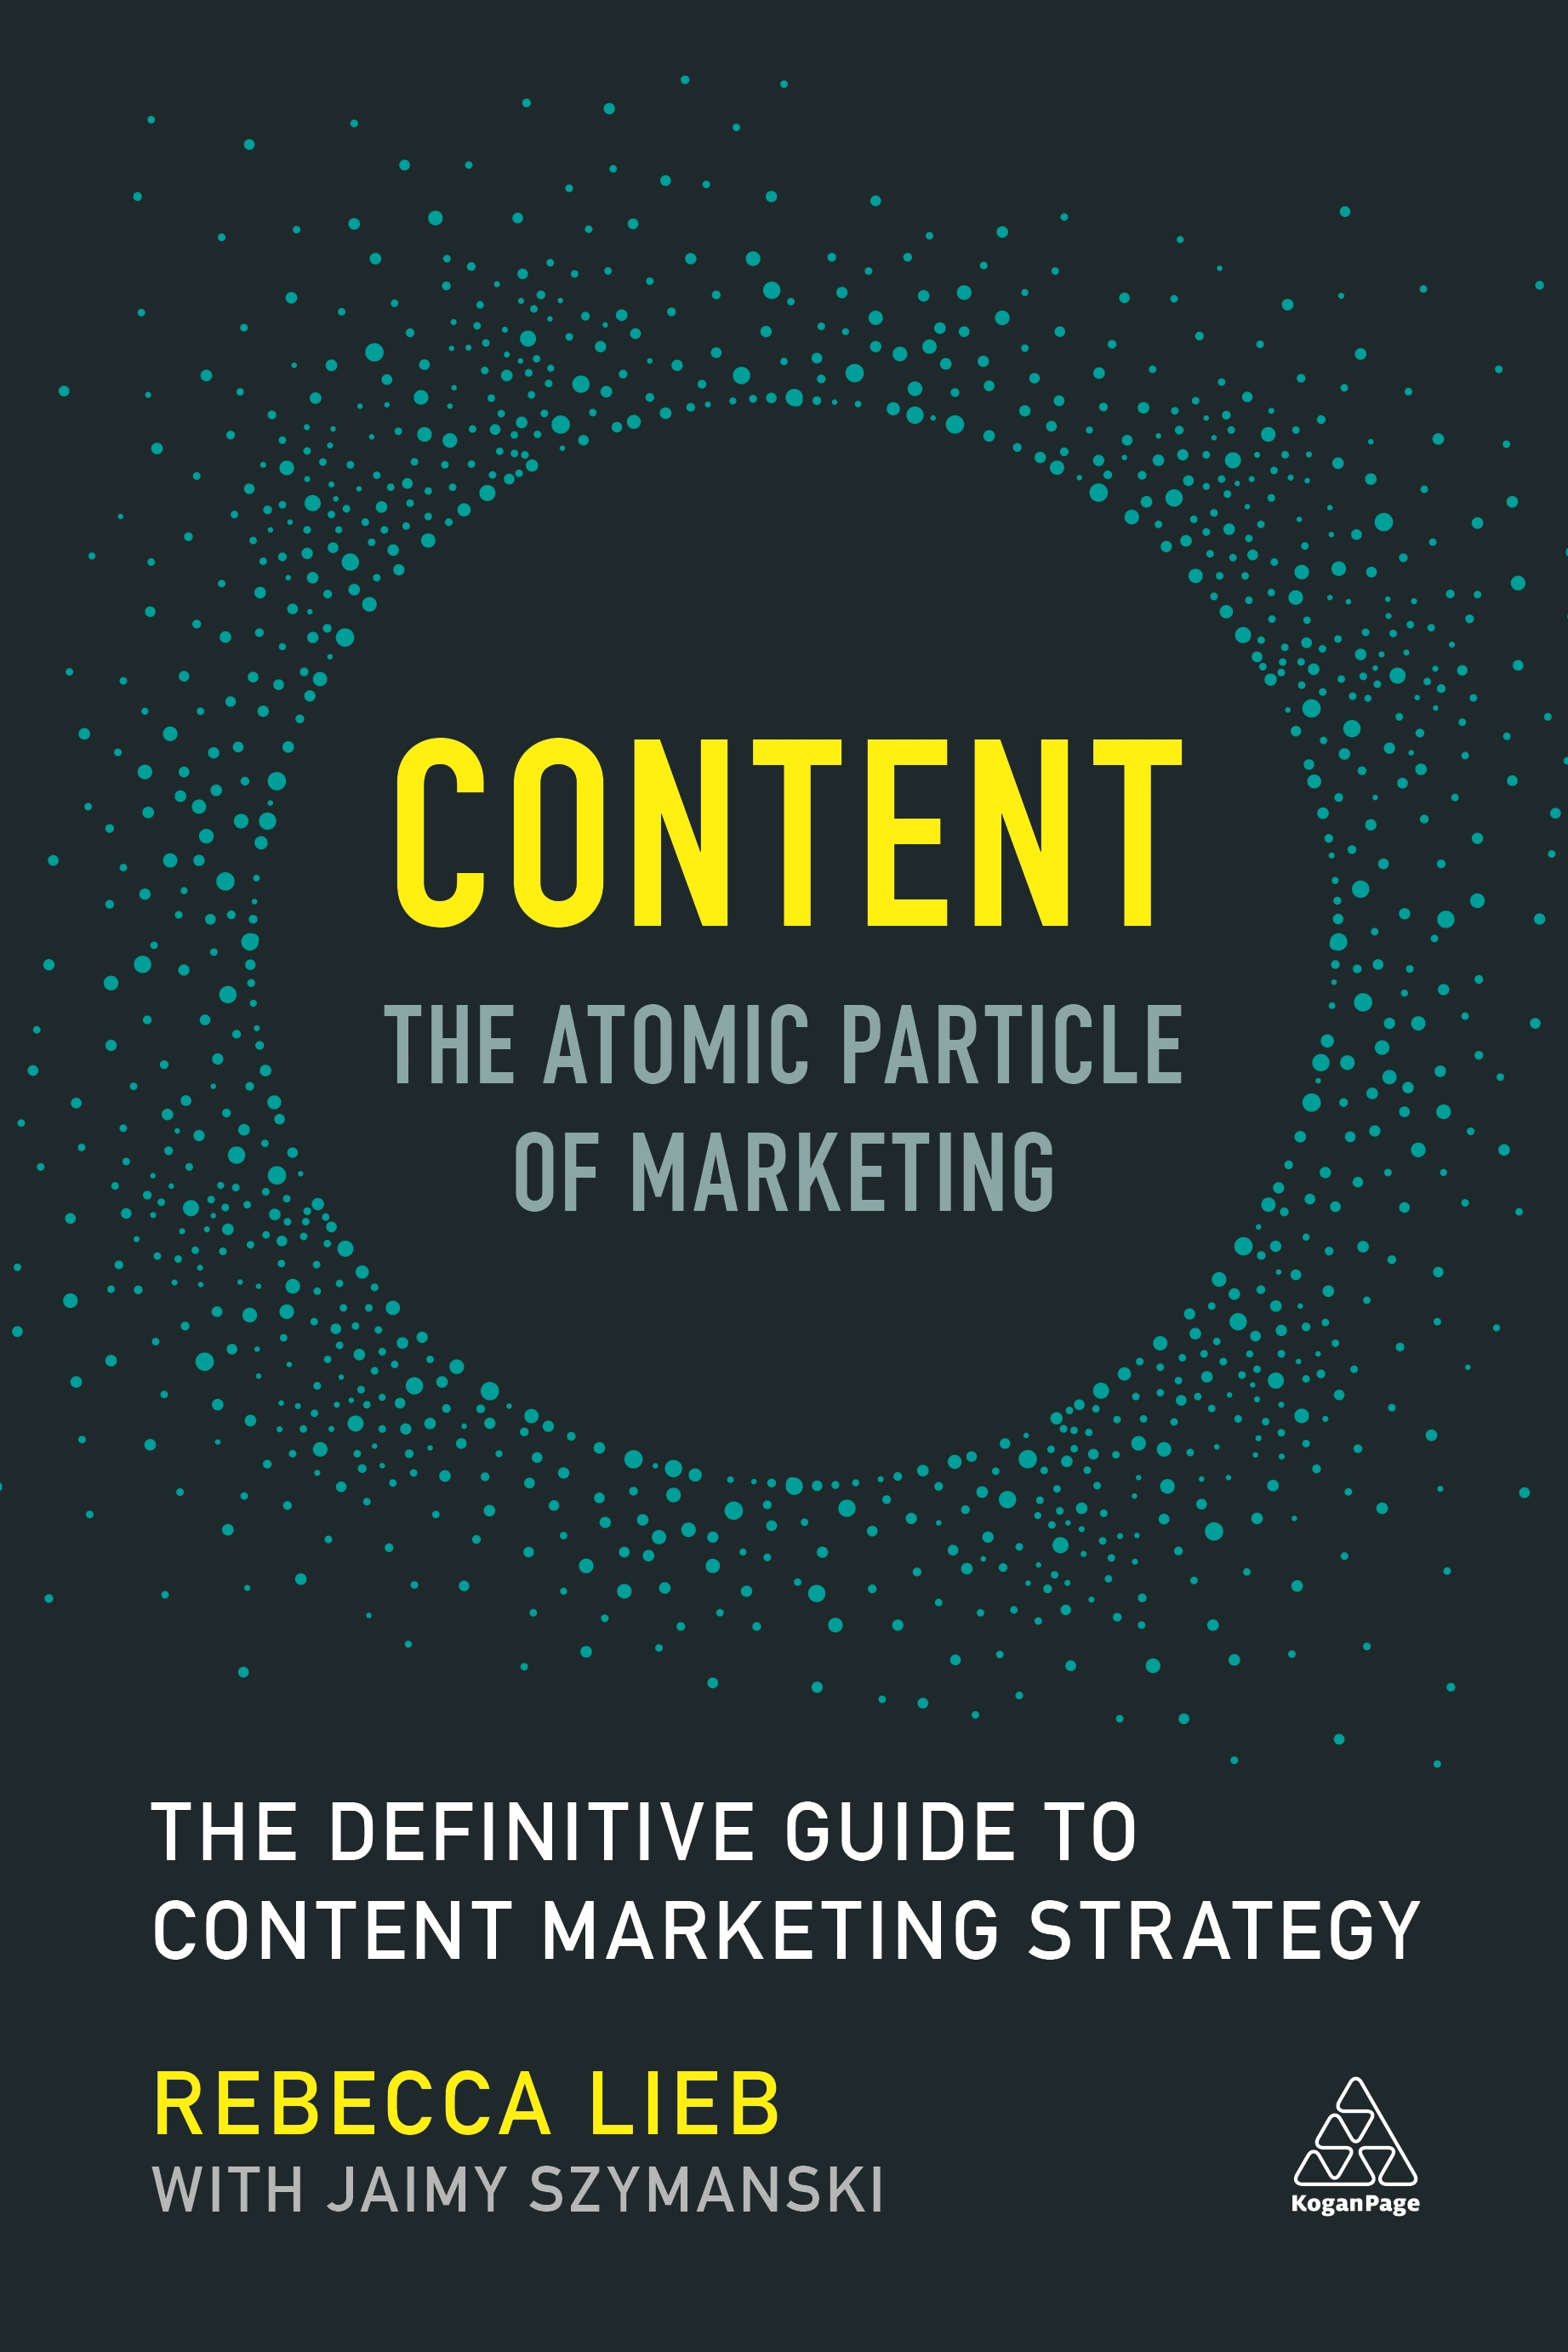 Content – The Atomic Particle of Marketing by Rebecca Lieb